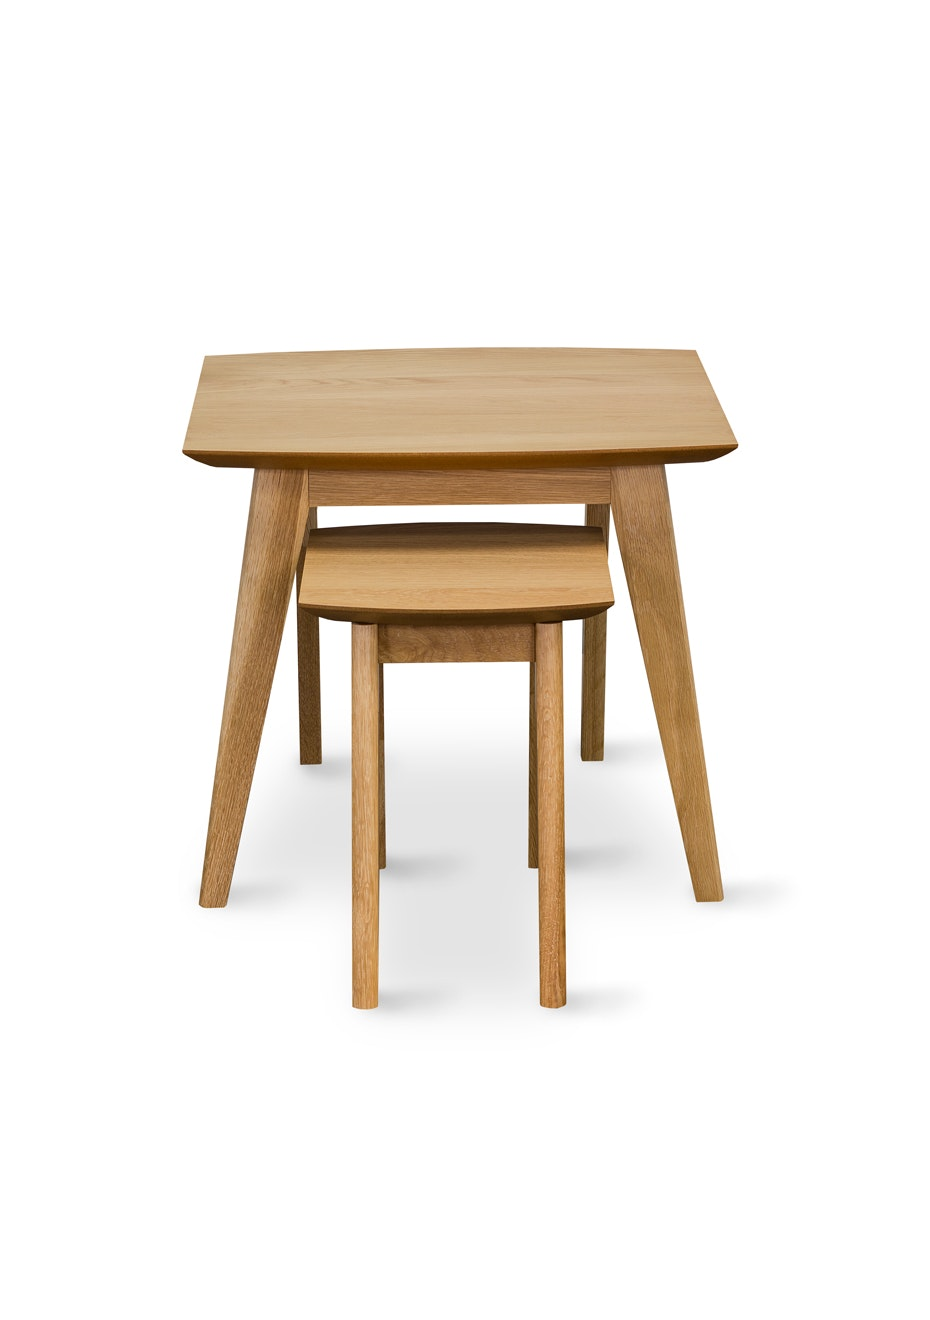 Furniture By Design - Milano Nest of Tables- Light Oak